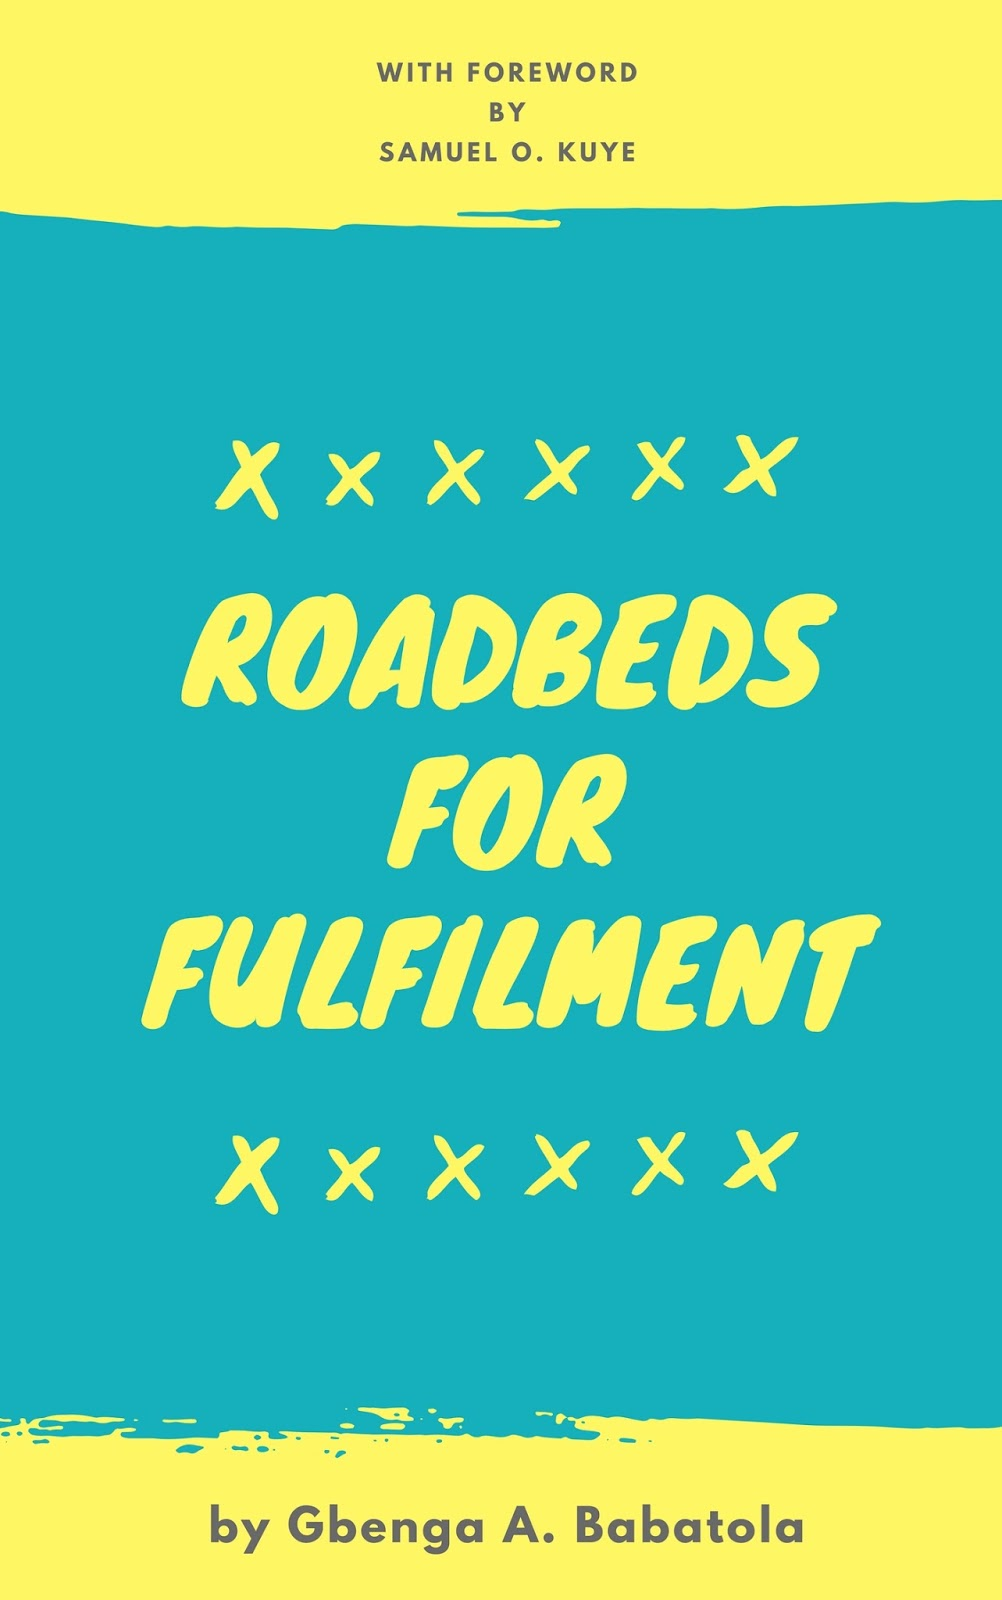 Roadbeds For Fulfilment by Gbenga A. Babatola